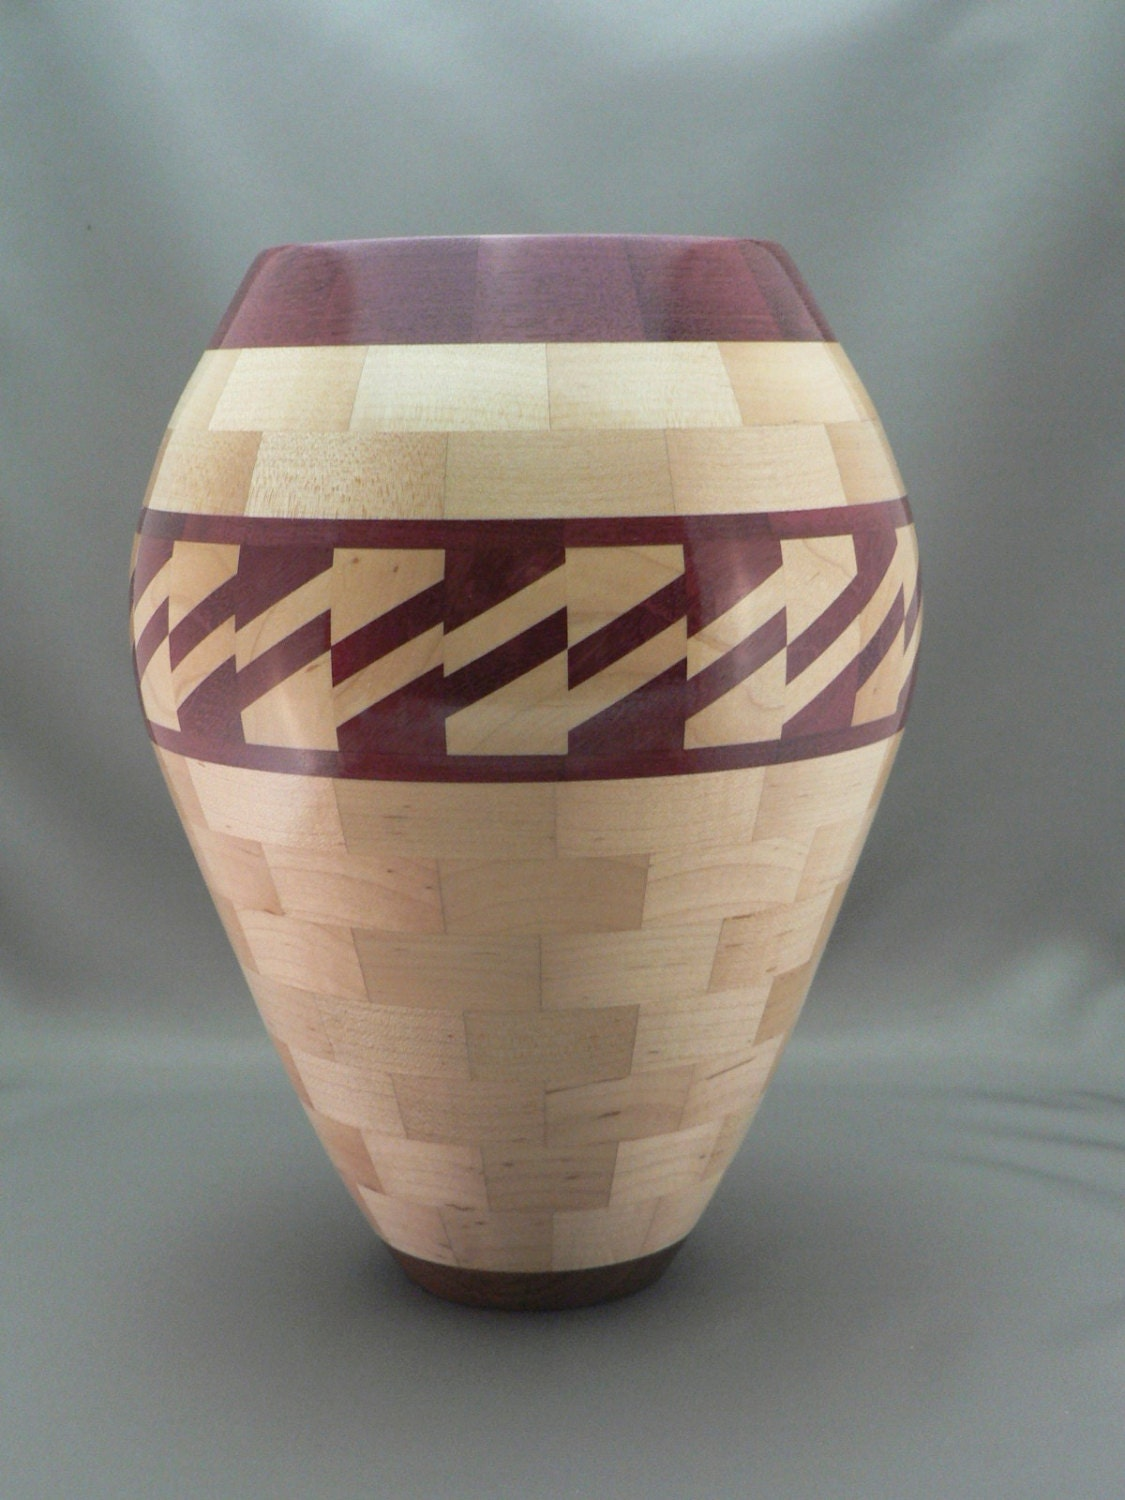 Wooden Vase Segmented Woodturning Home Decor Unique